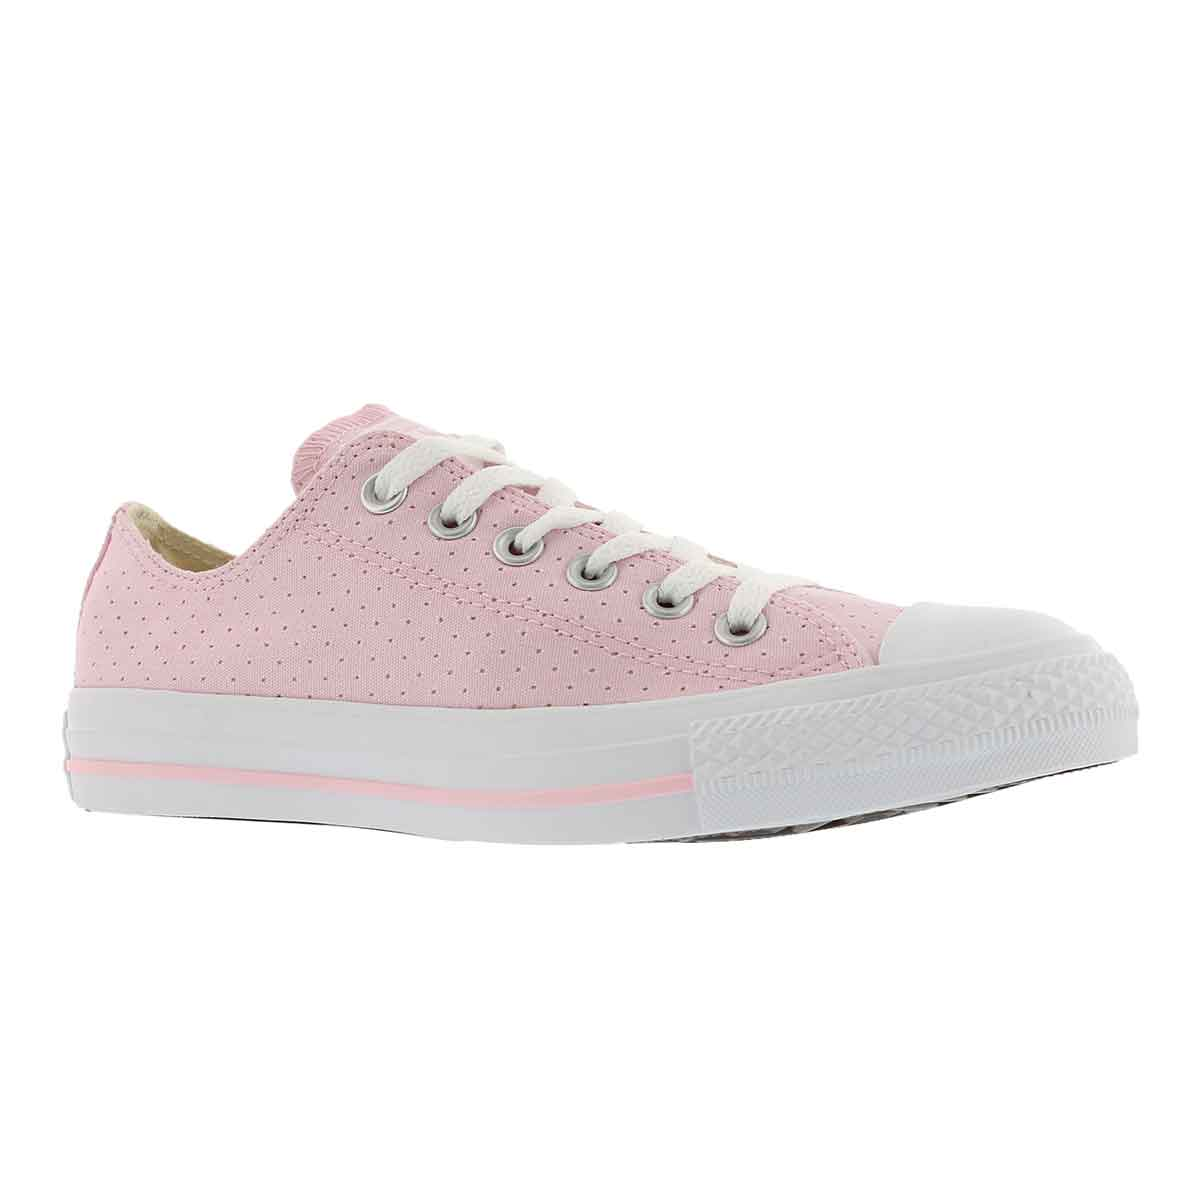 Women's CT ALL STAR PERFORATED cherry/wht sneakers